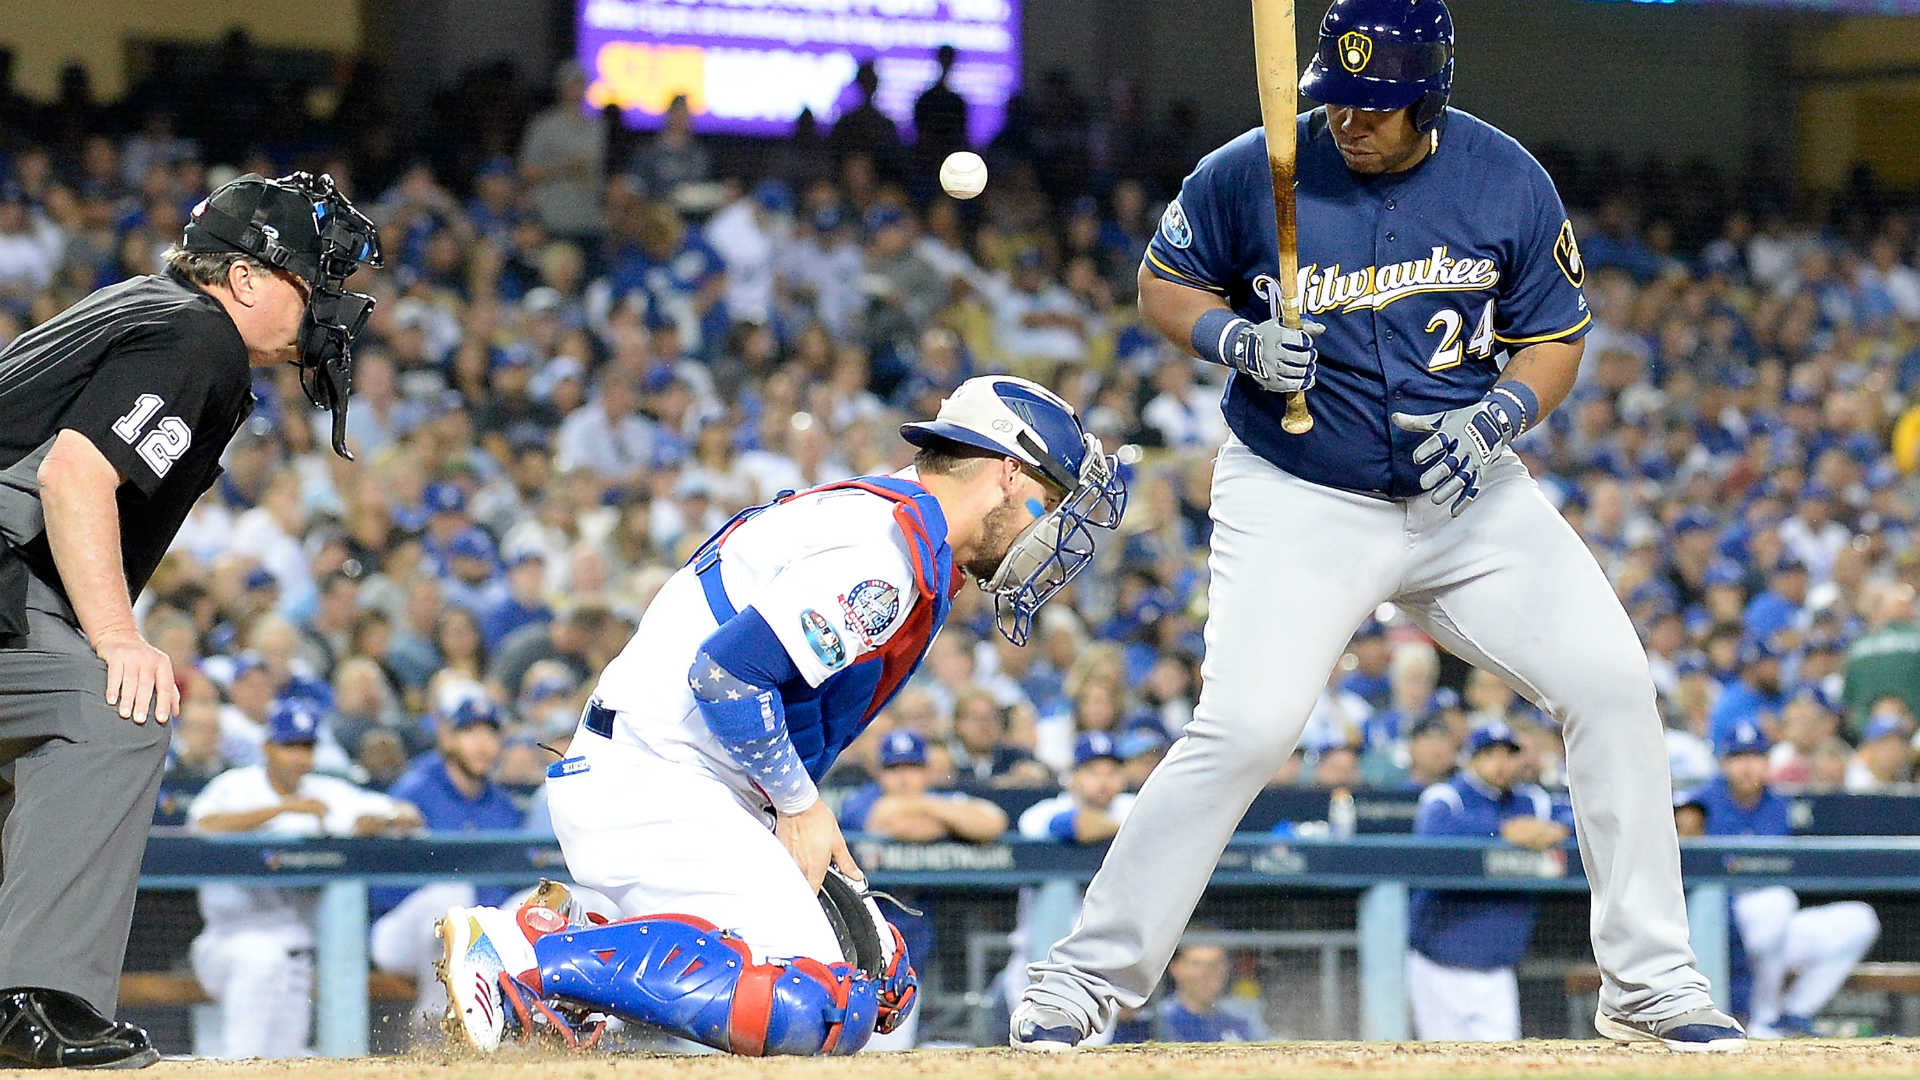 Brewers reportedly suspect Dodgers are using video to steal signs